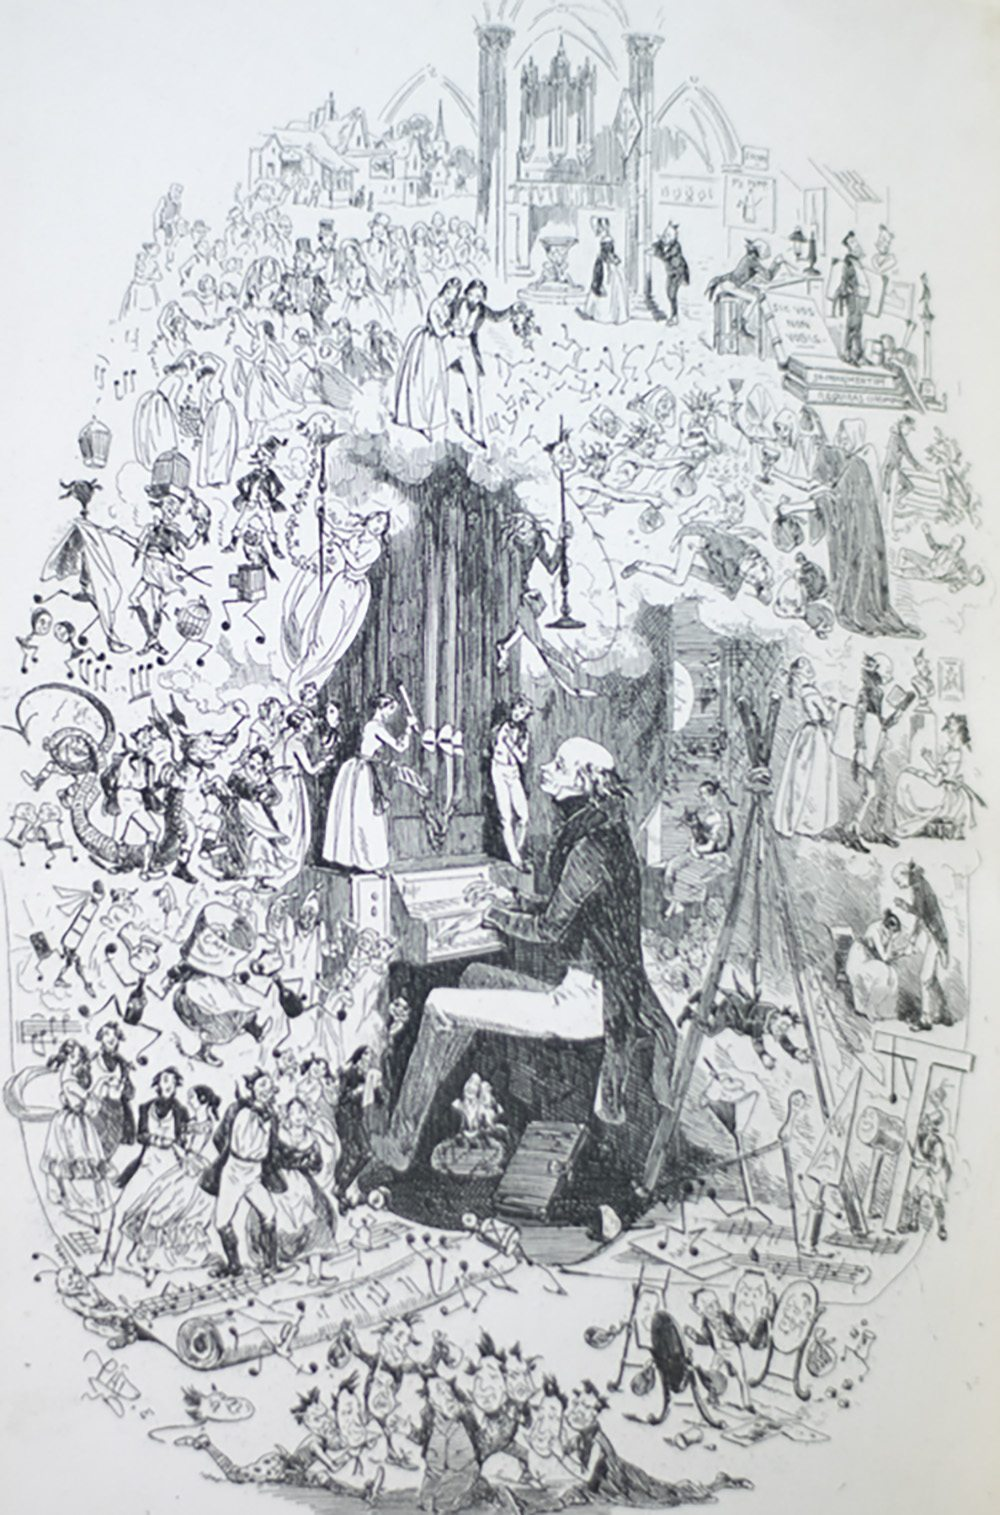 The Works of Charles Dickens (Including: Bleak House; A Tale of Two Cities; David Copperfield; Great Expectations; Oliver Twist; A Christmas Carol; David Copperfield; Dombey & Son; The Old Curiosity Shop; Nicholas Nickleby).